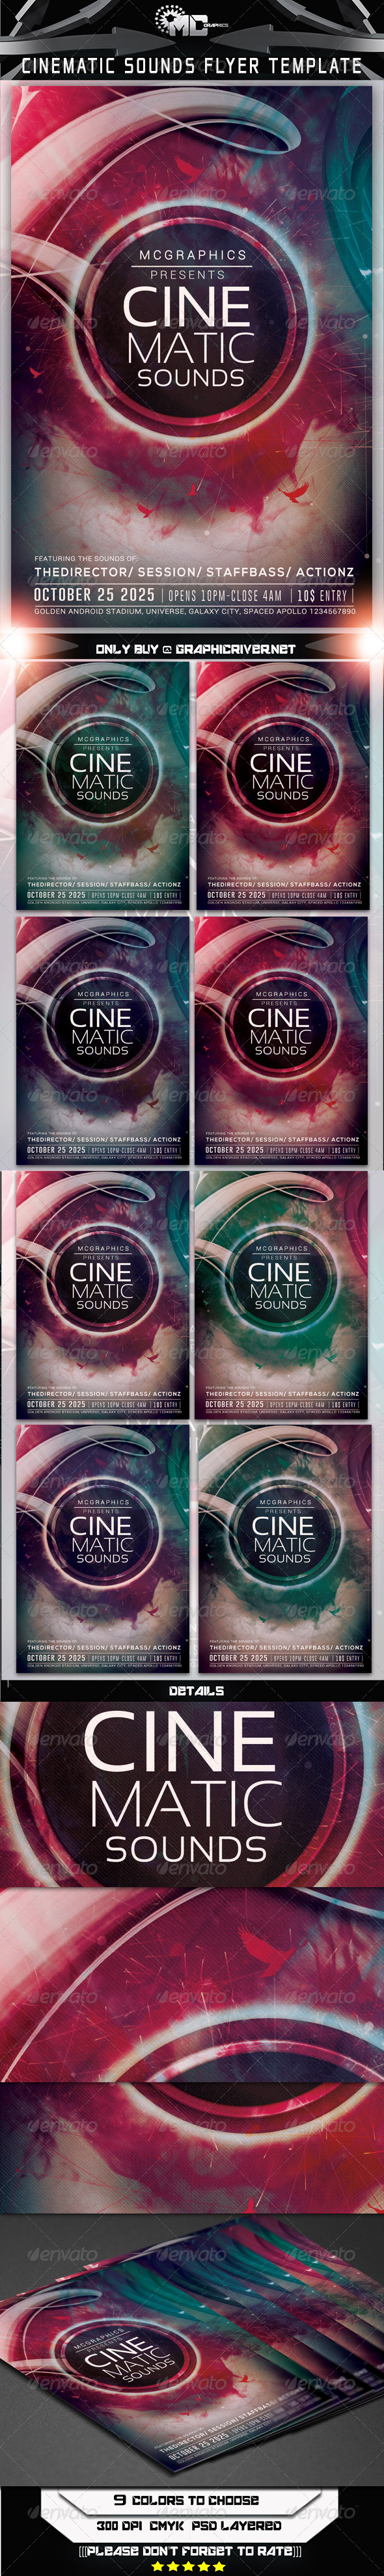 Cinematic Sounds Flyer Template